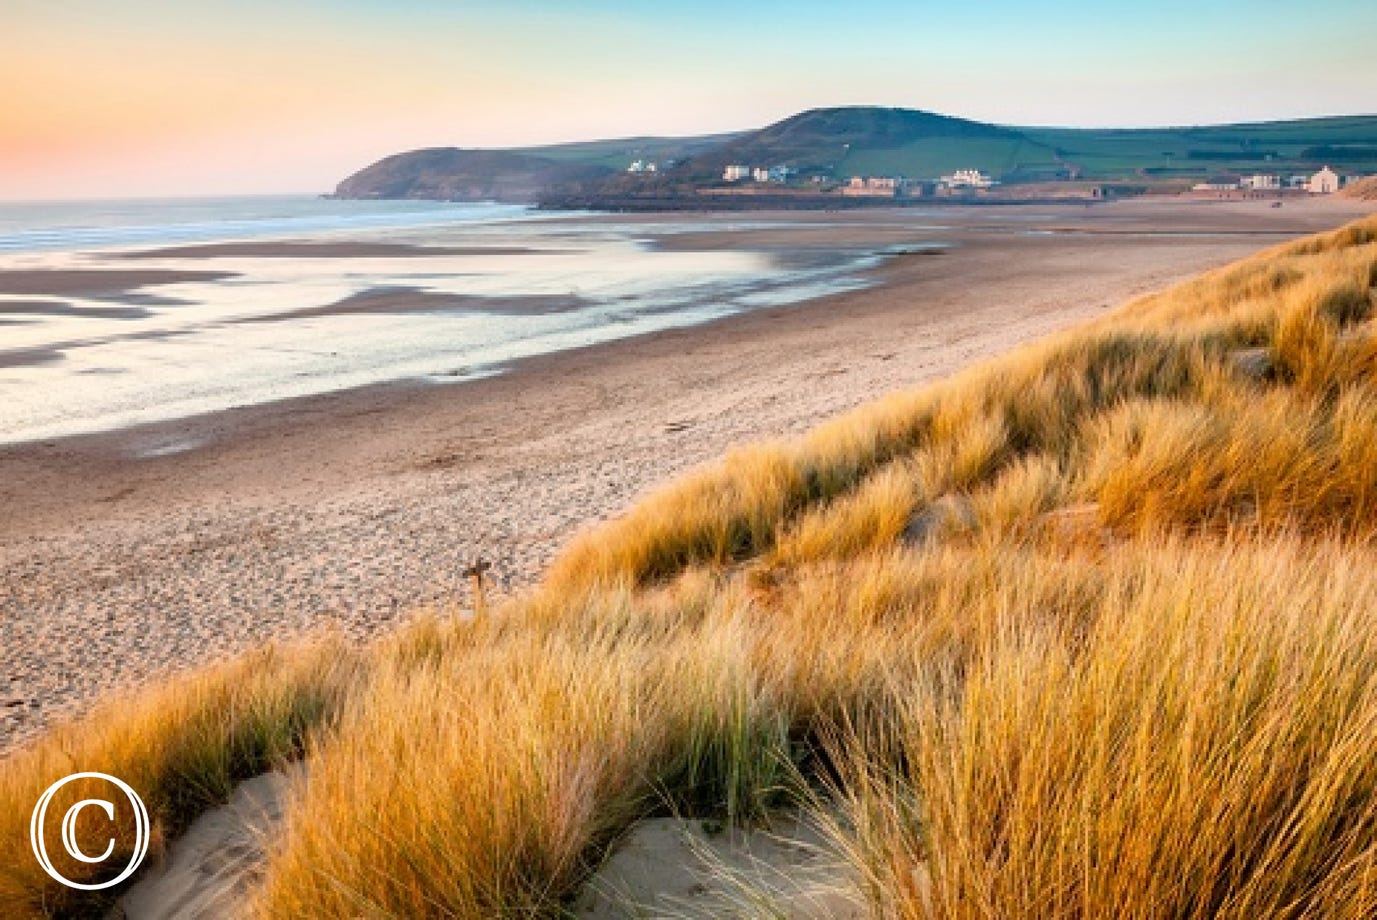 Just a few minutes walk from the road leading to the centre of the village and golden sandy beach of Croyde